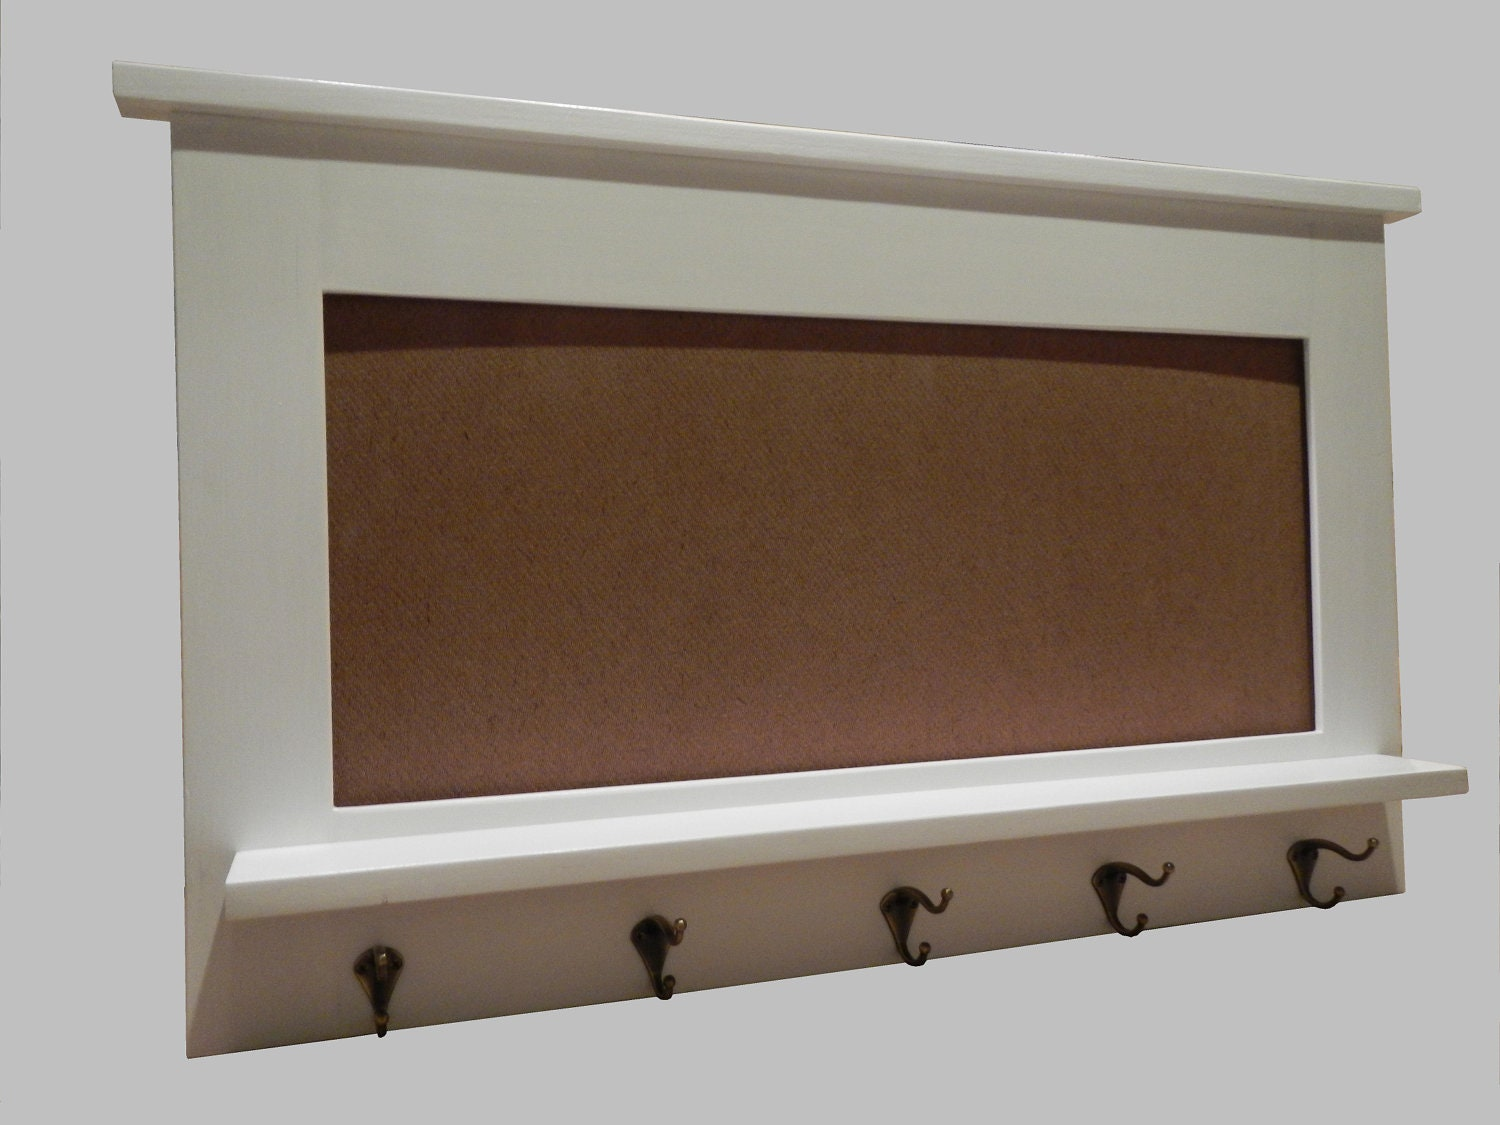 White Entry organizer wall mirrorbeach decor by neilsonwoodworks